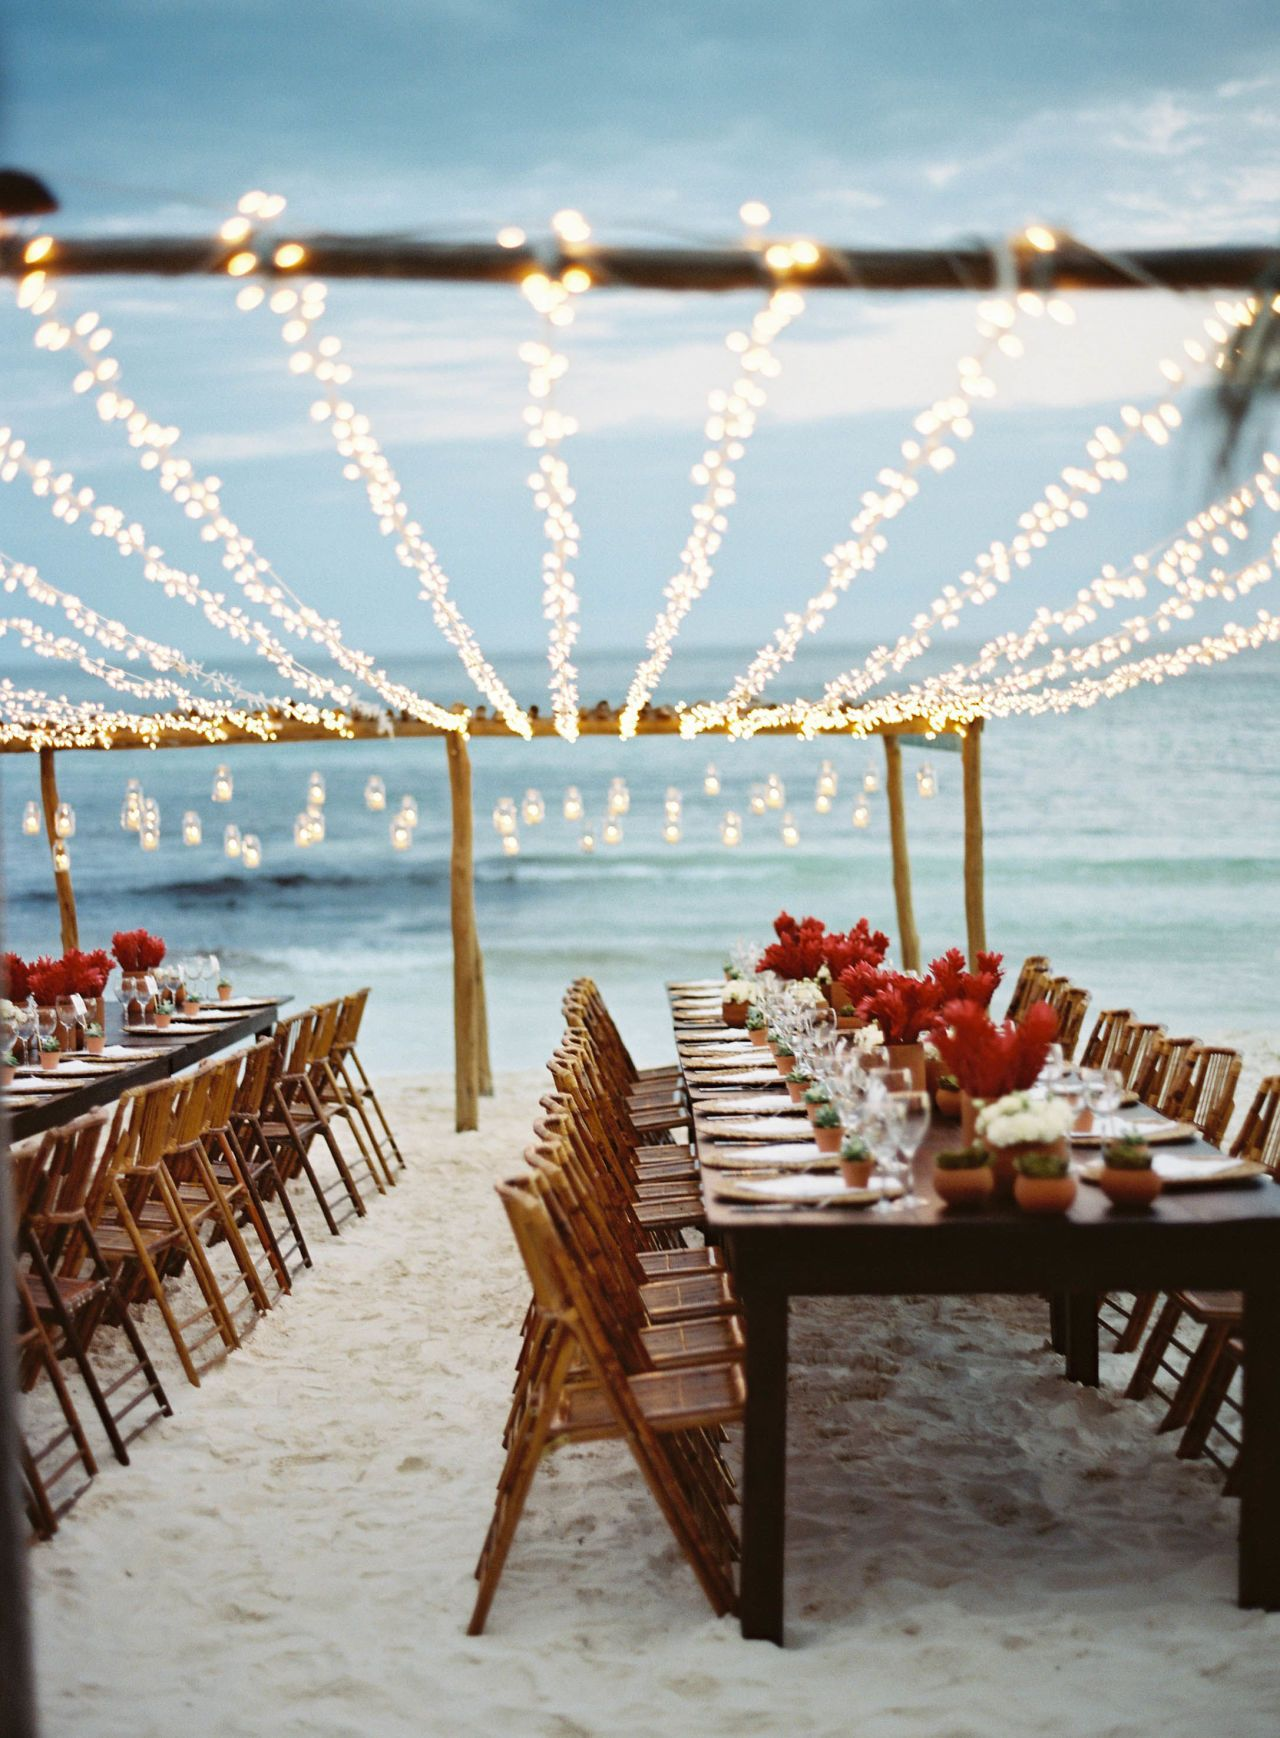 Beach Wedding Lights Red Flowers Photography Tec Petajah Explore